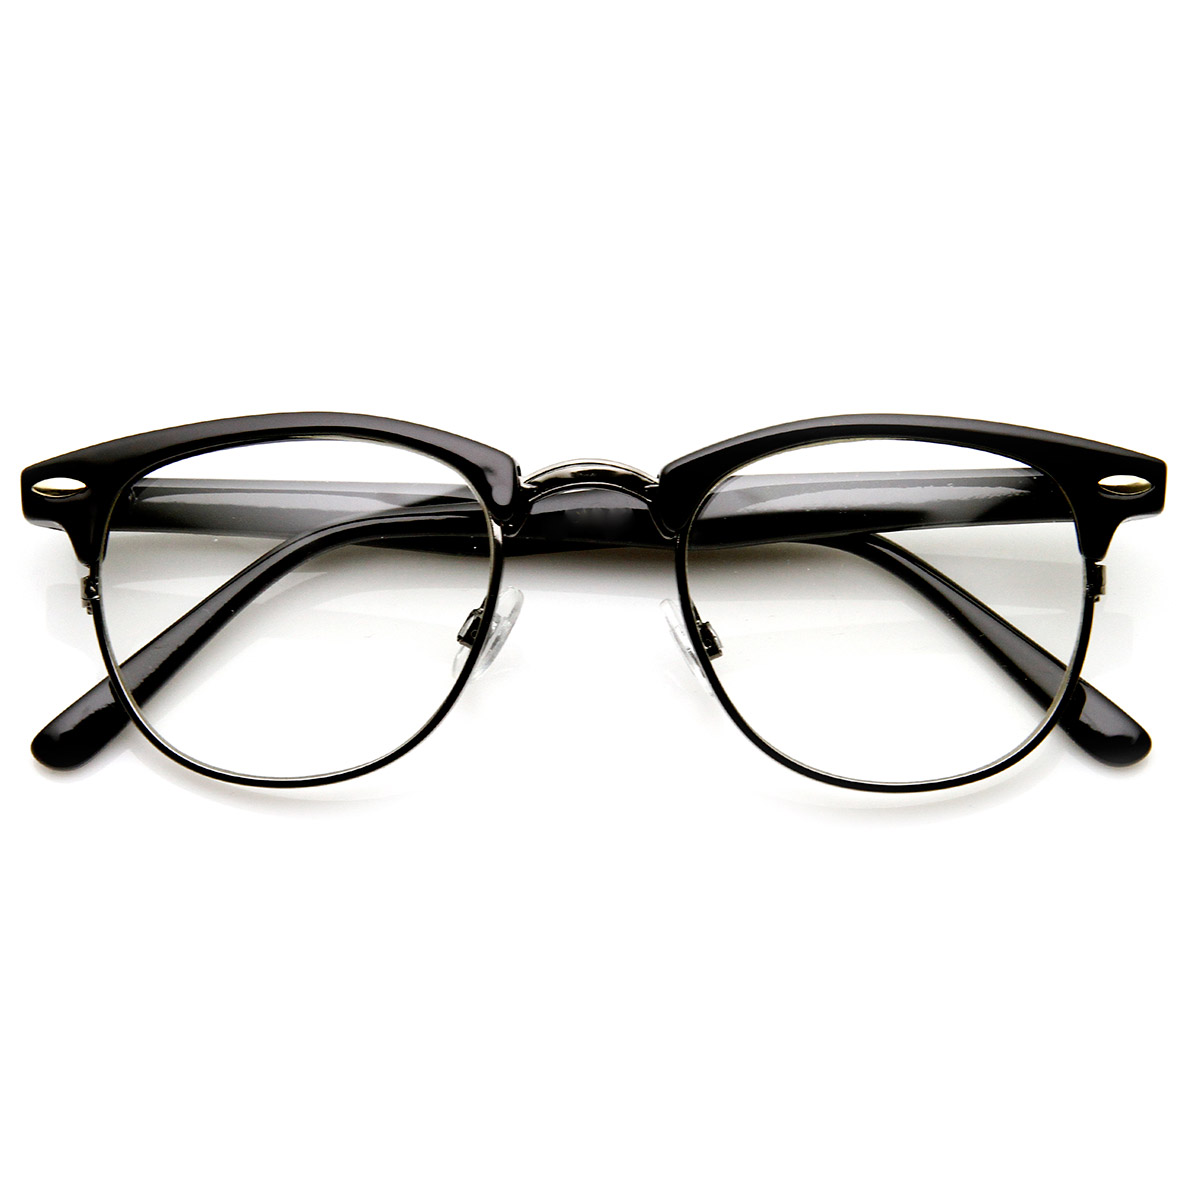 Diesel Half Frame Glasses : Optical Quality Horned Rim Clear Lens RXAble Half Frame ...